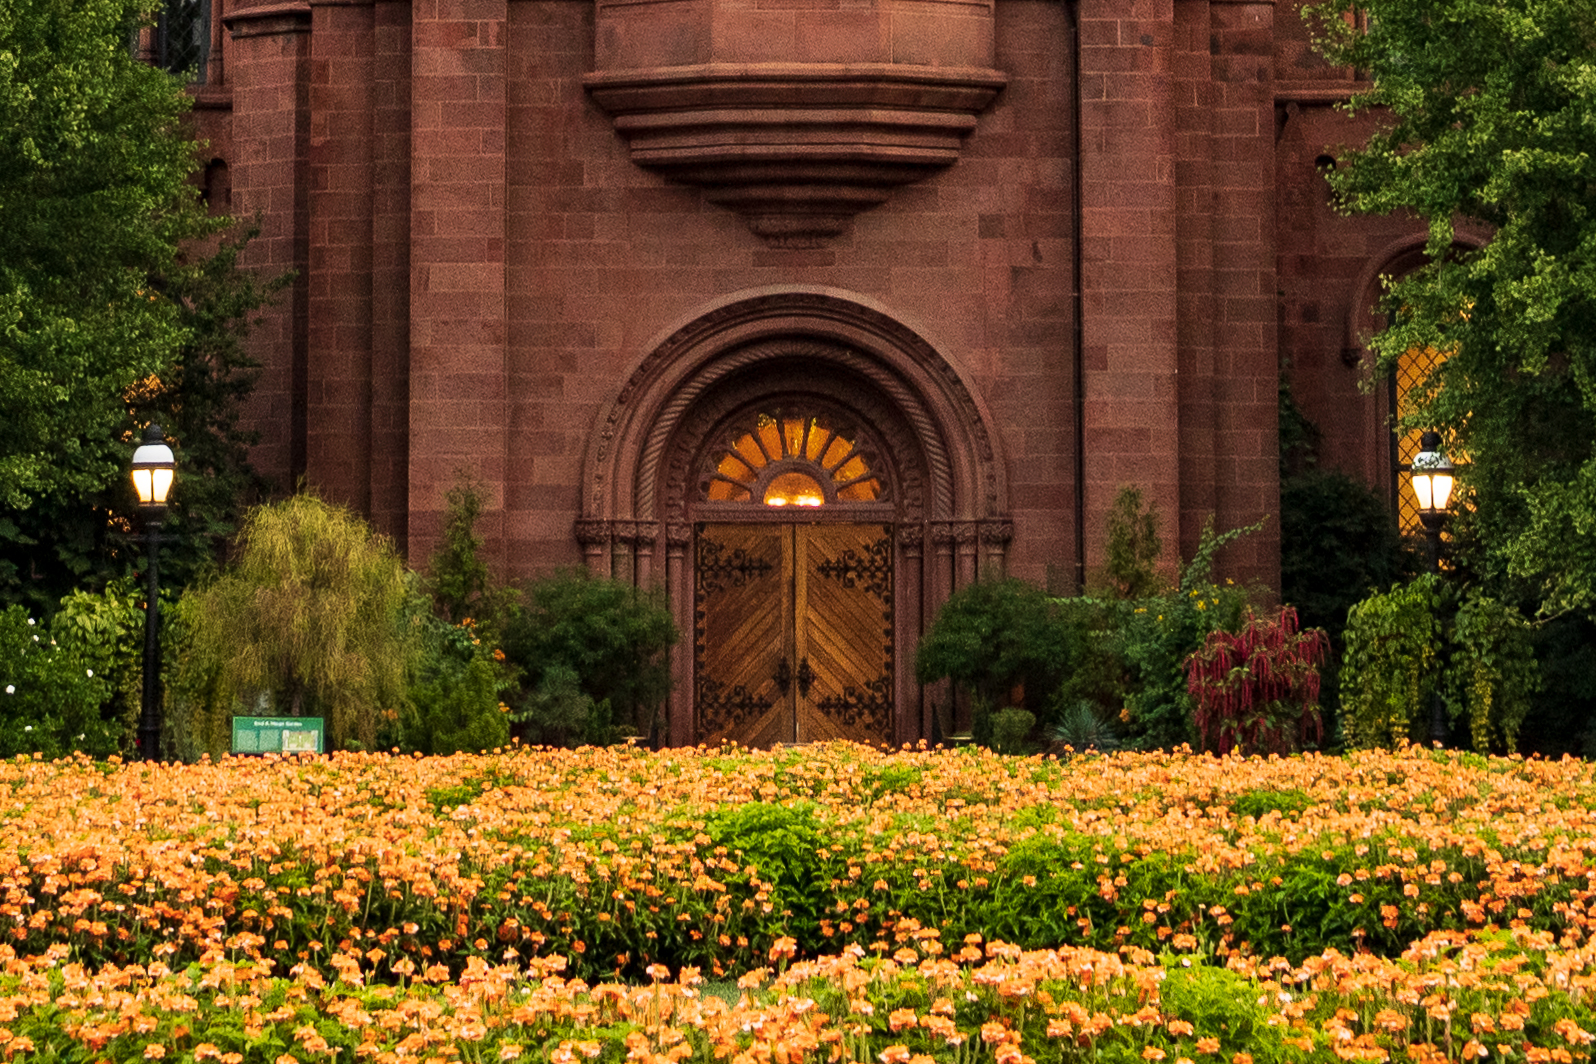 Doors of Smithsonian Castle with mass of orange flowers in front